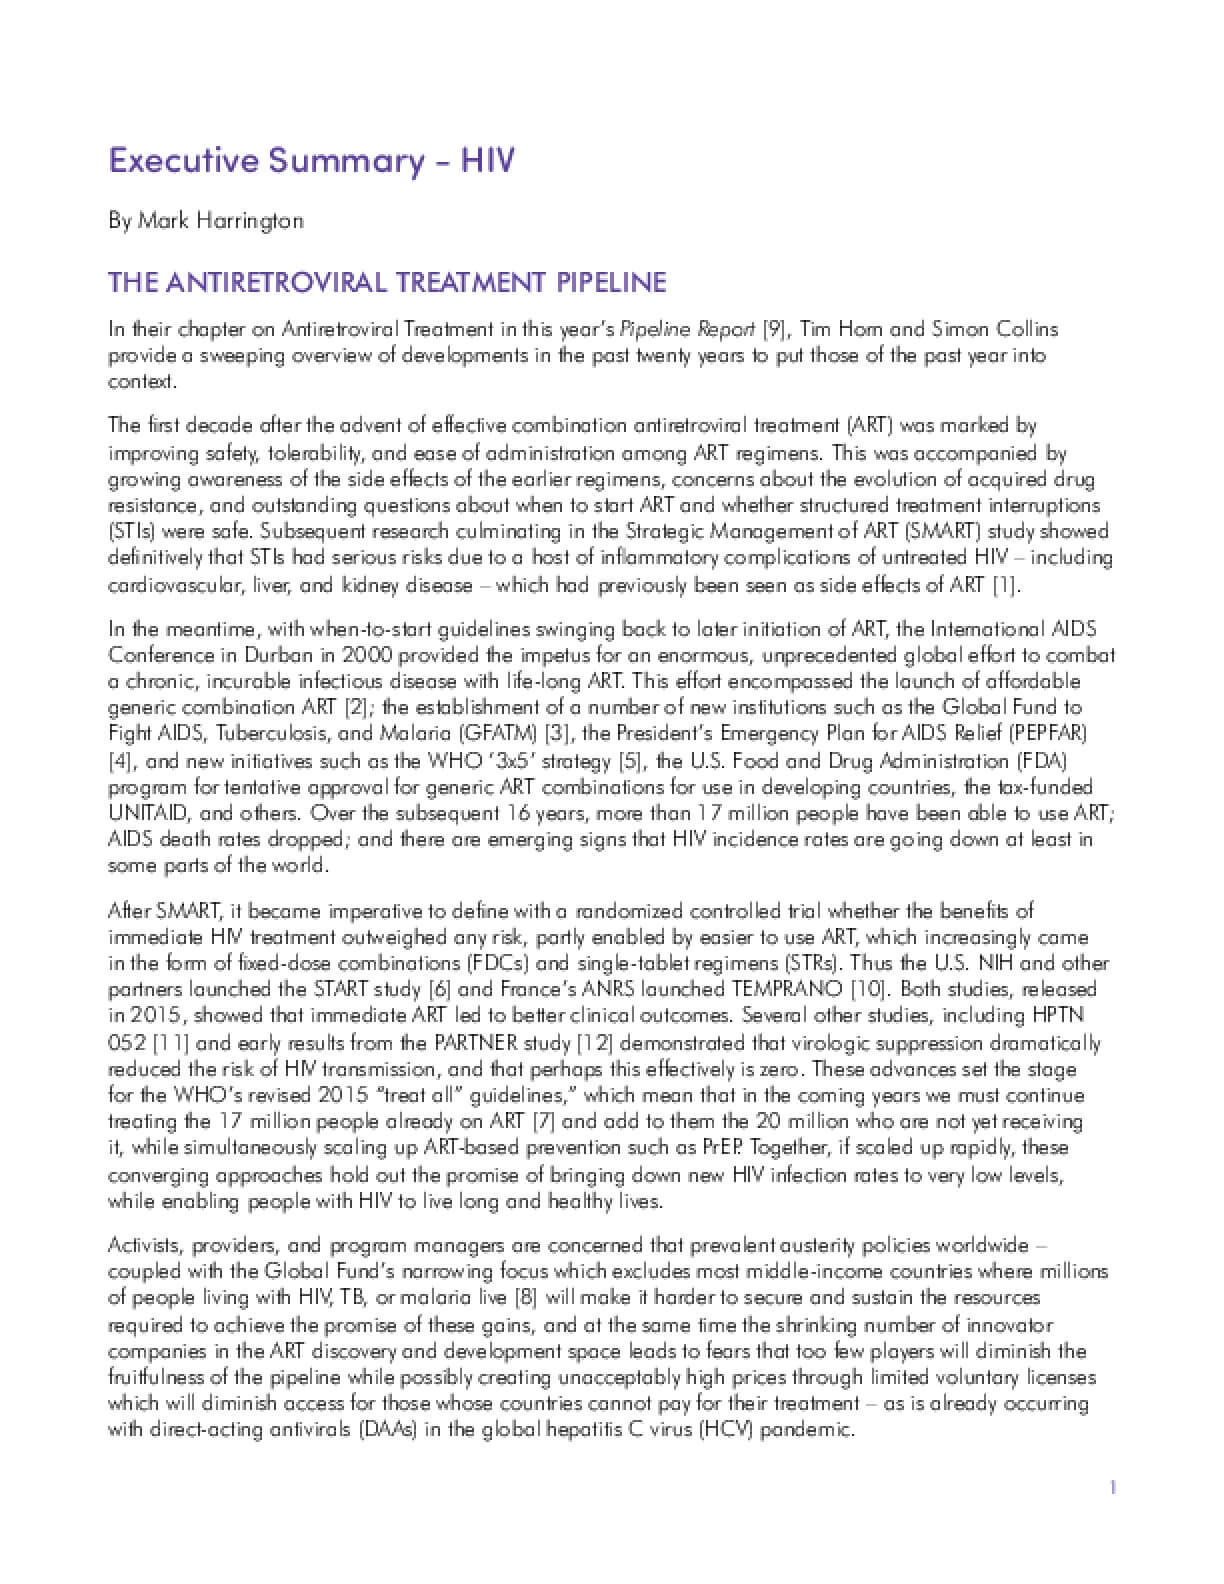 2016 Pipeline Report HIV and TB, Executive Summary